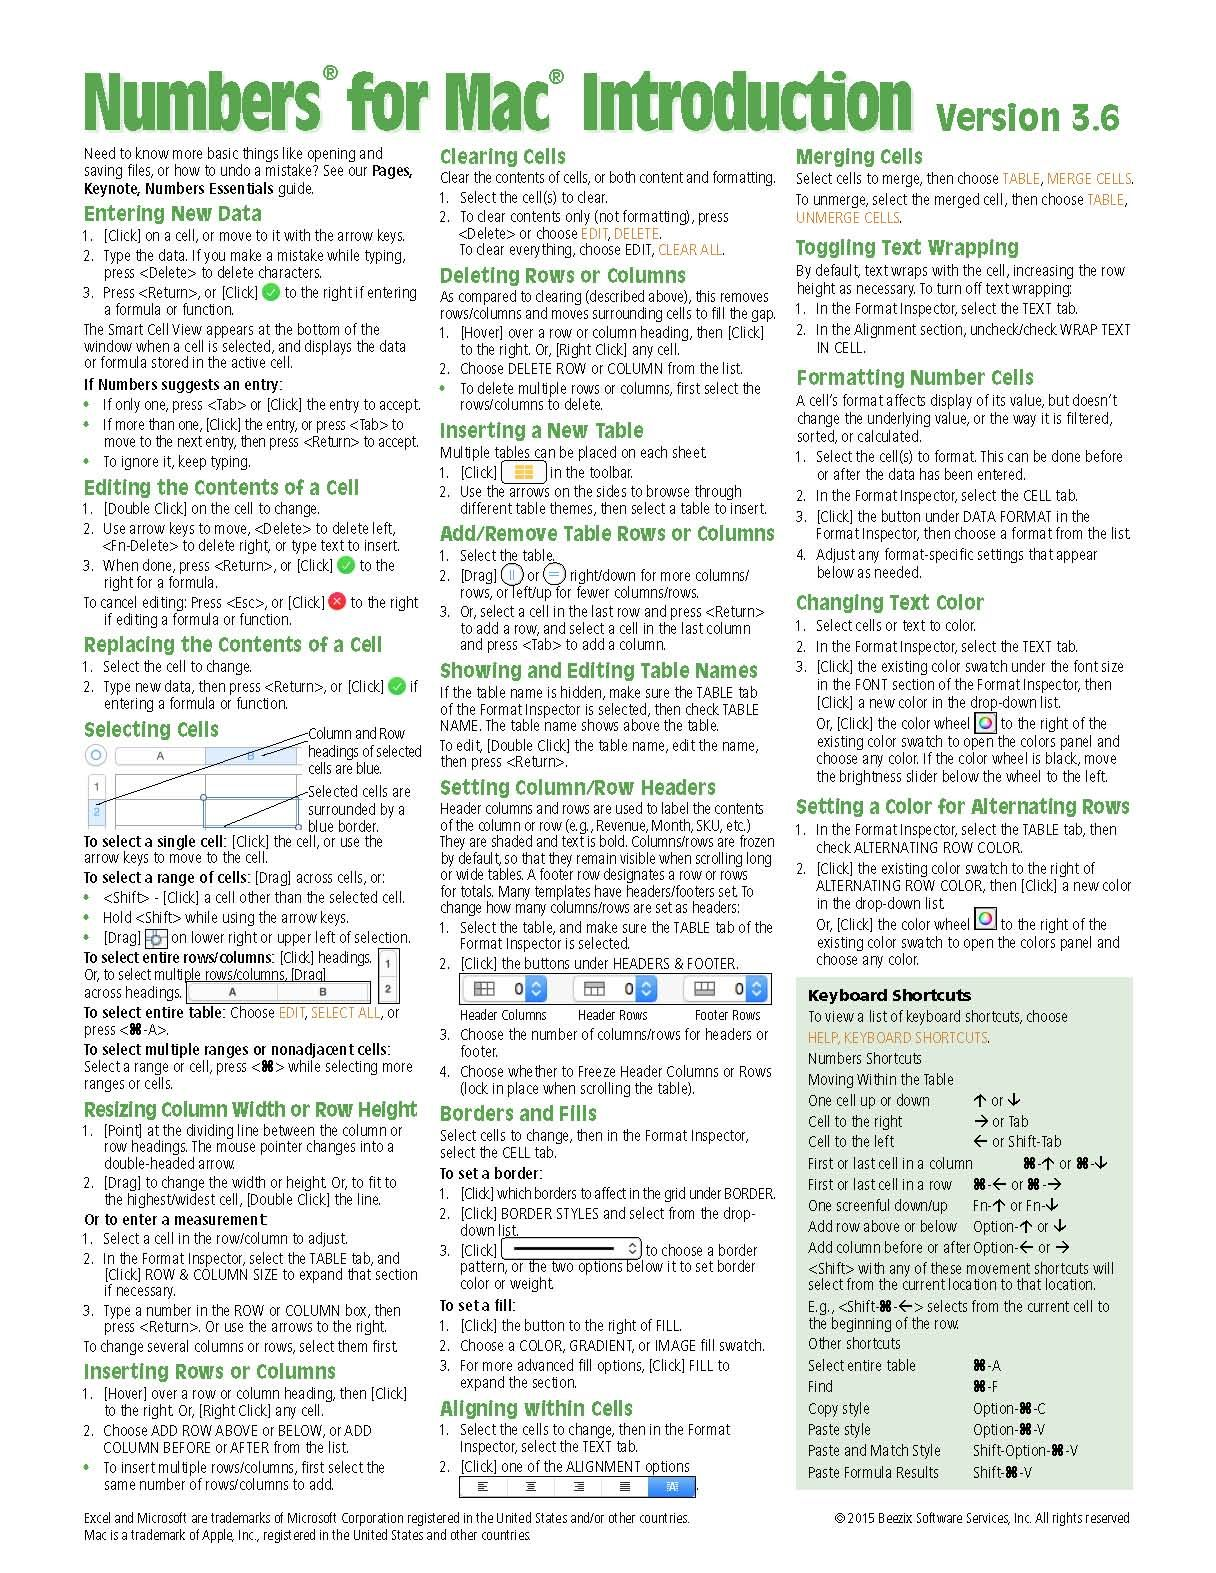 Numbers 3 6 Mac Quick Reference Guide Cheat Sheet Card